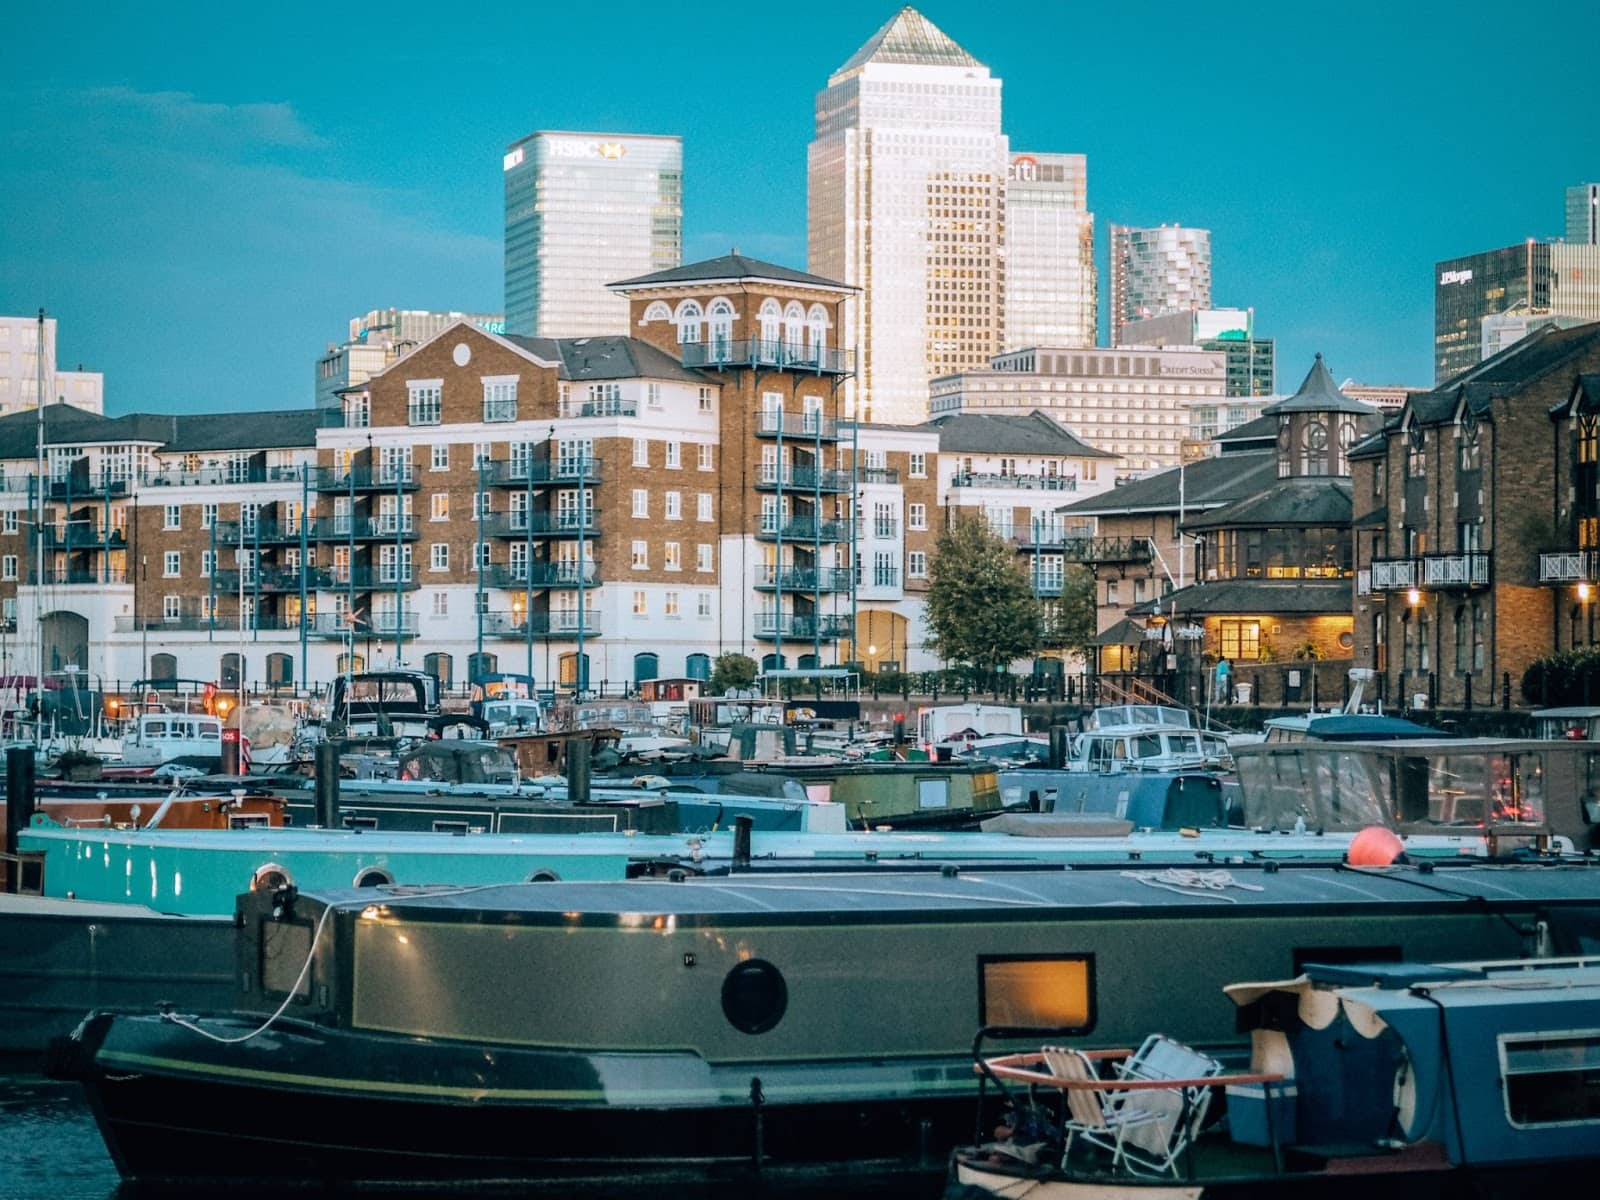 Limehouse Basin launch points in London